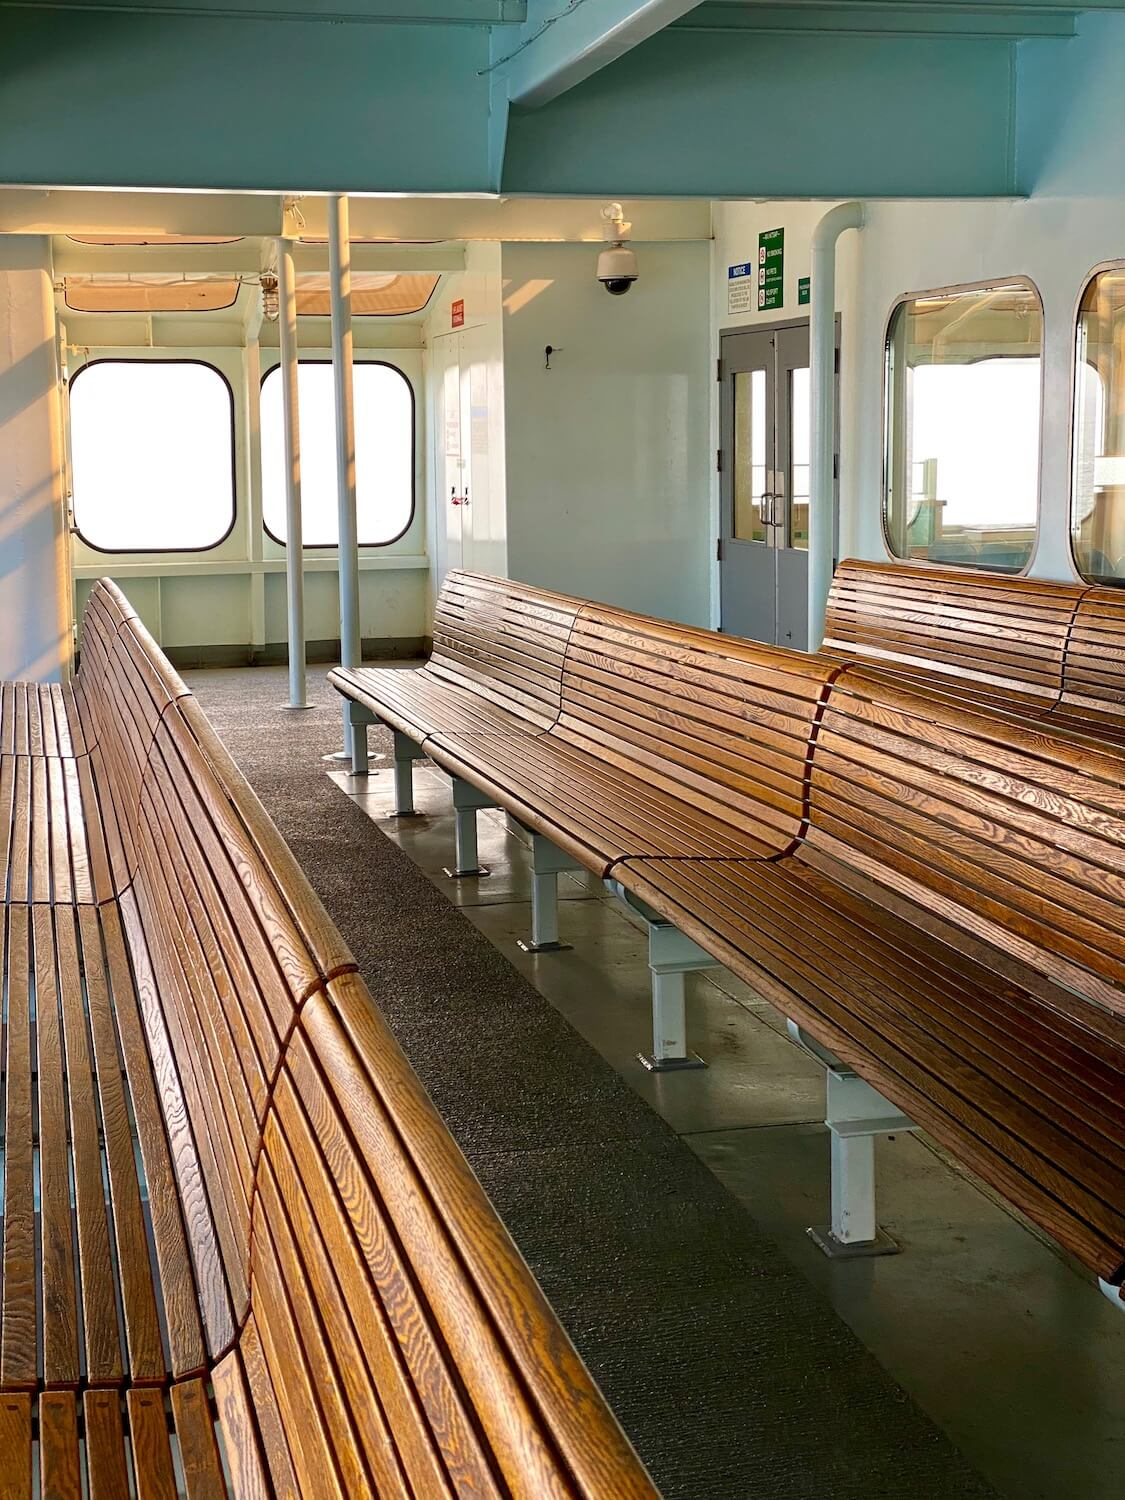 The wooden benches on a Washington State Ferry gently curve to the contour of passengers, but there are none to be seen in this photo.